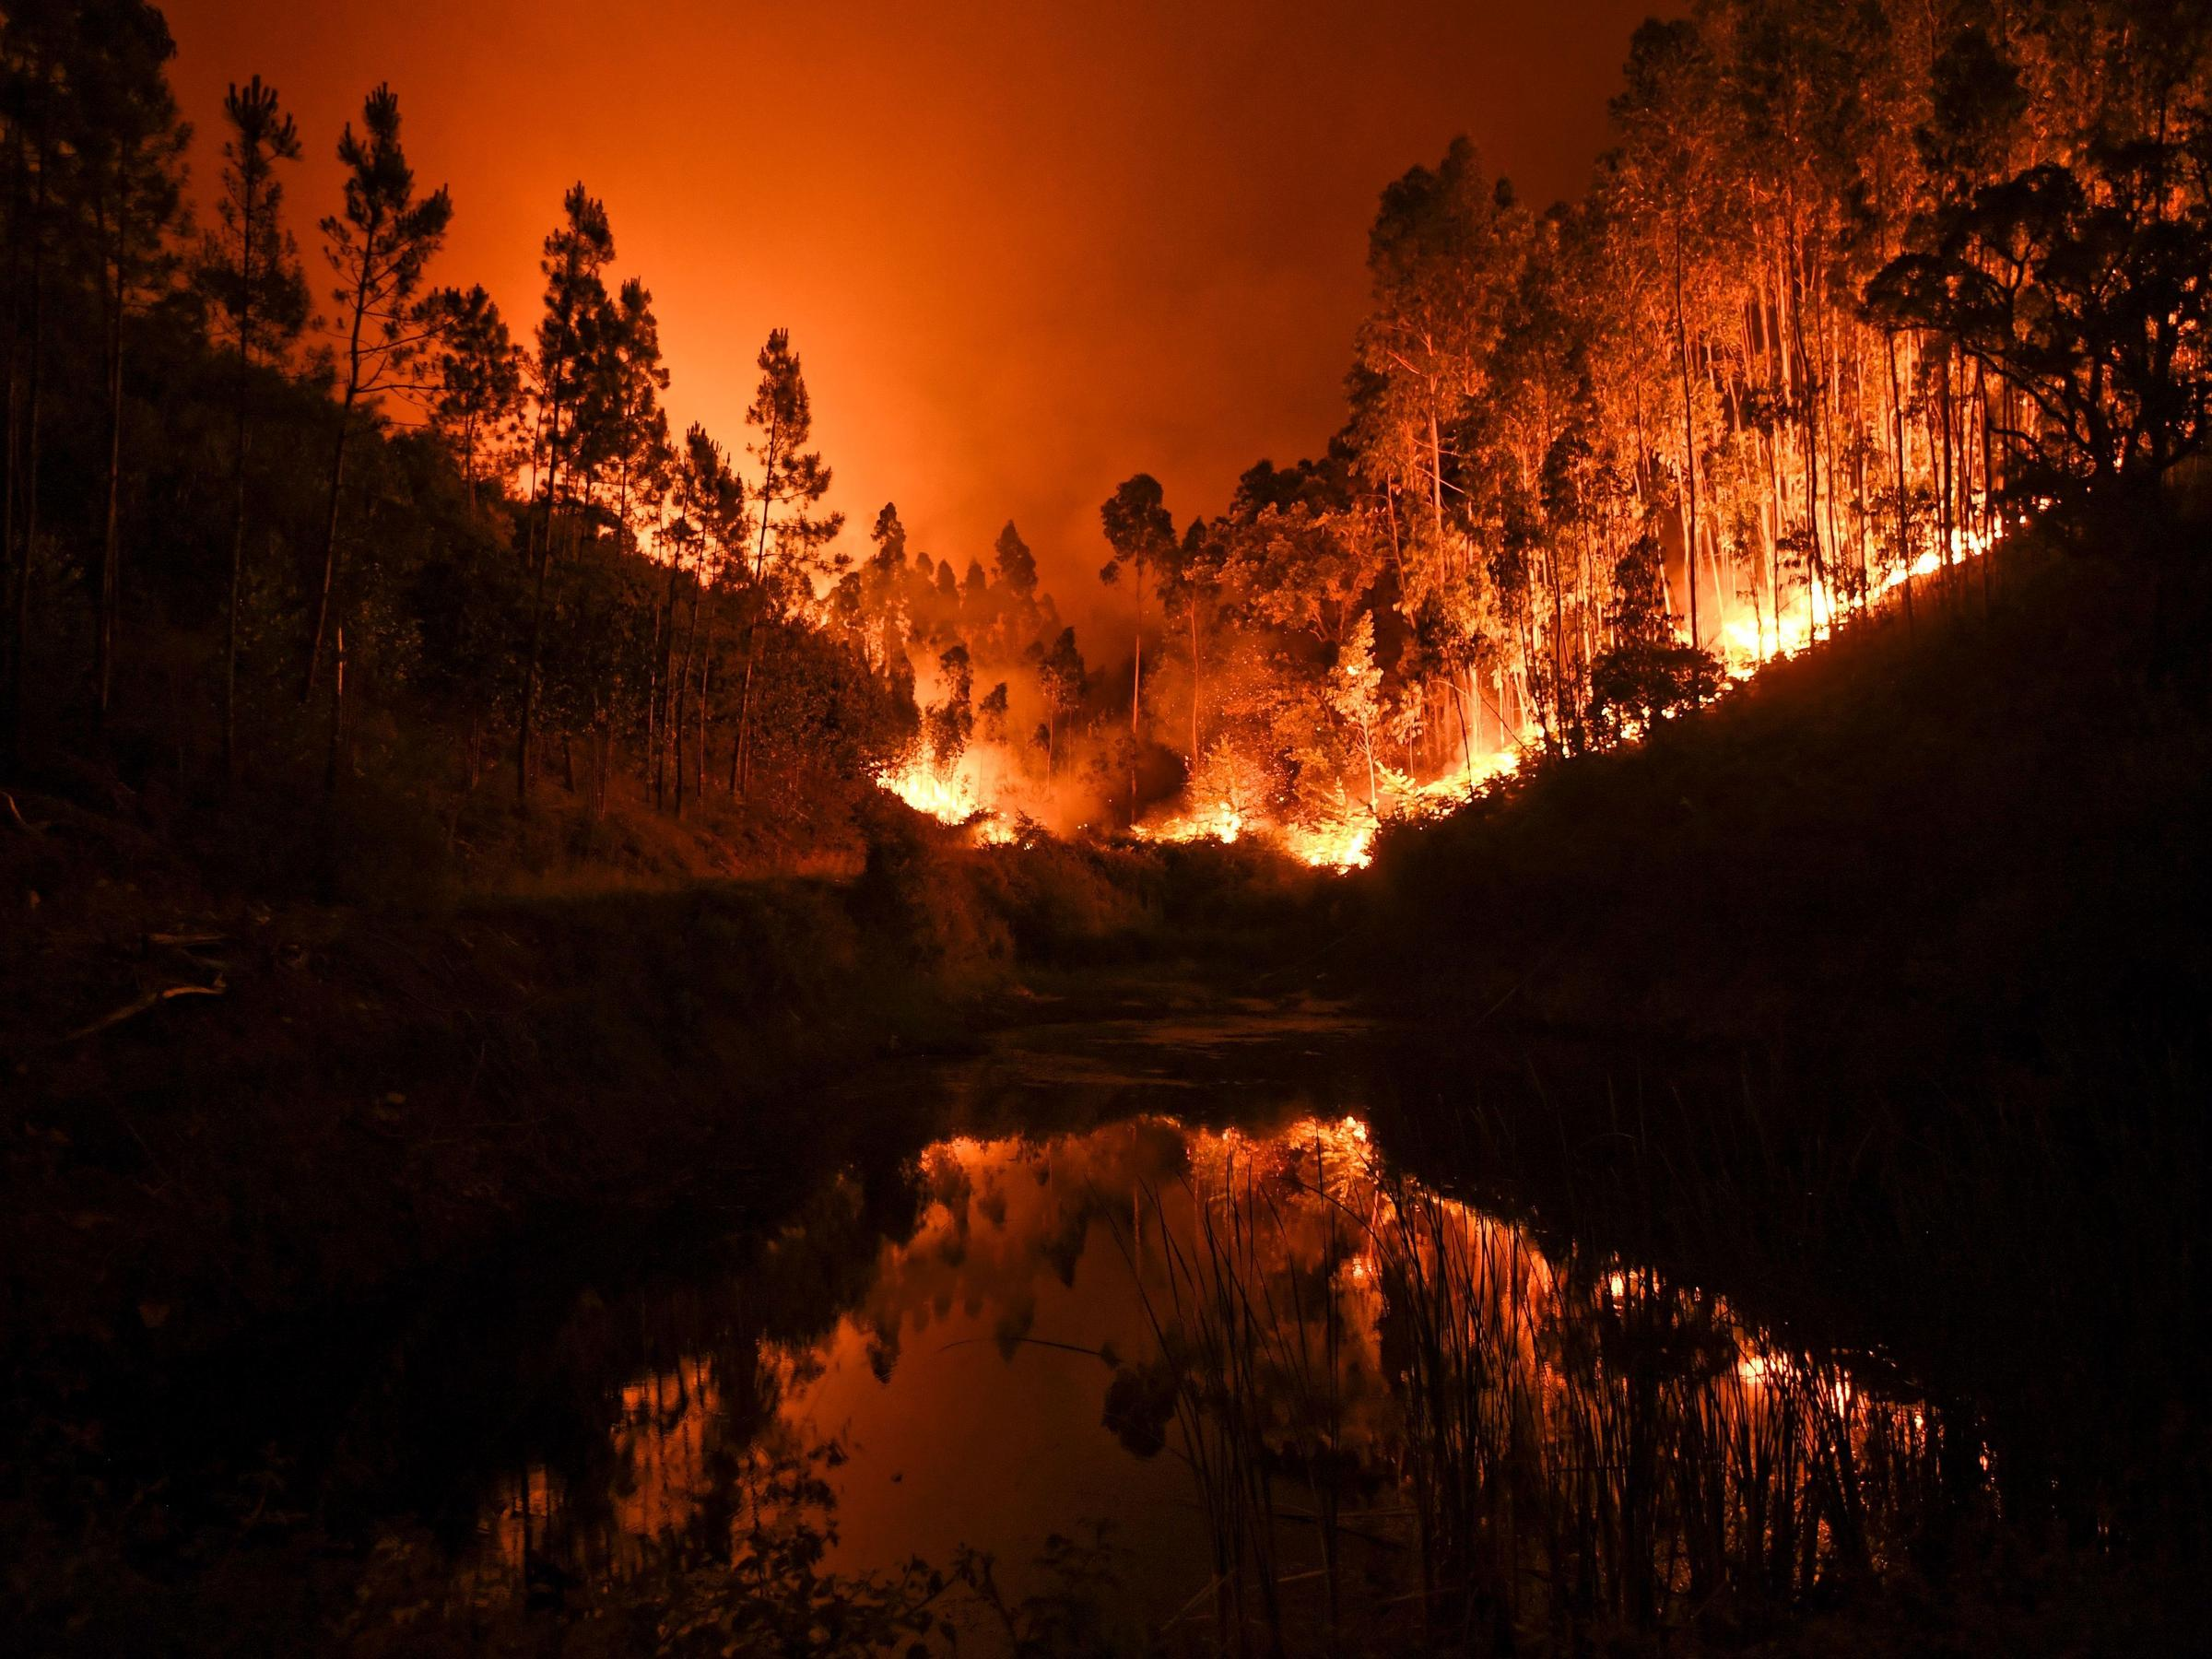 A stream in Penela reflects the wildfire raging in central Portugal on Sunday. The fire which has killed dozens of people is